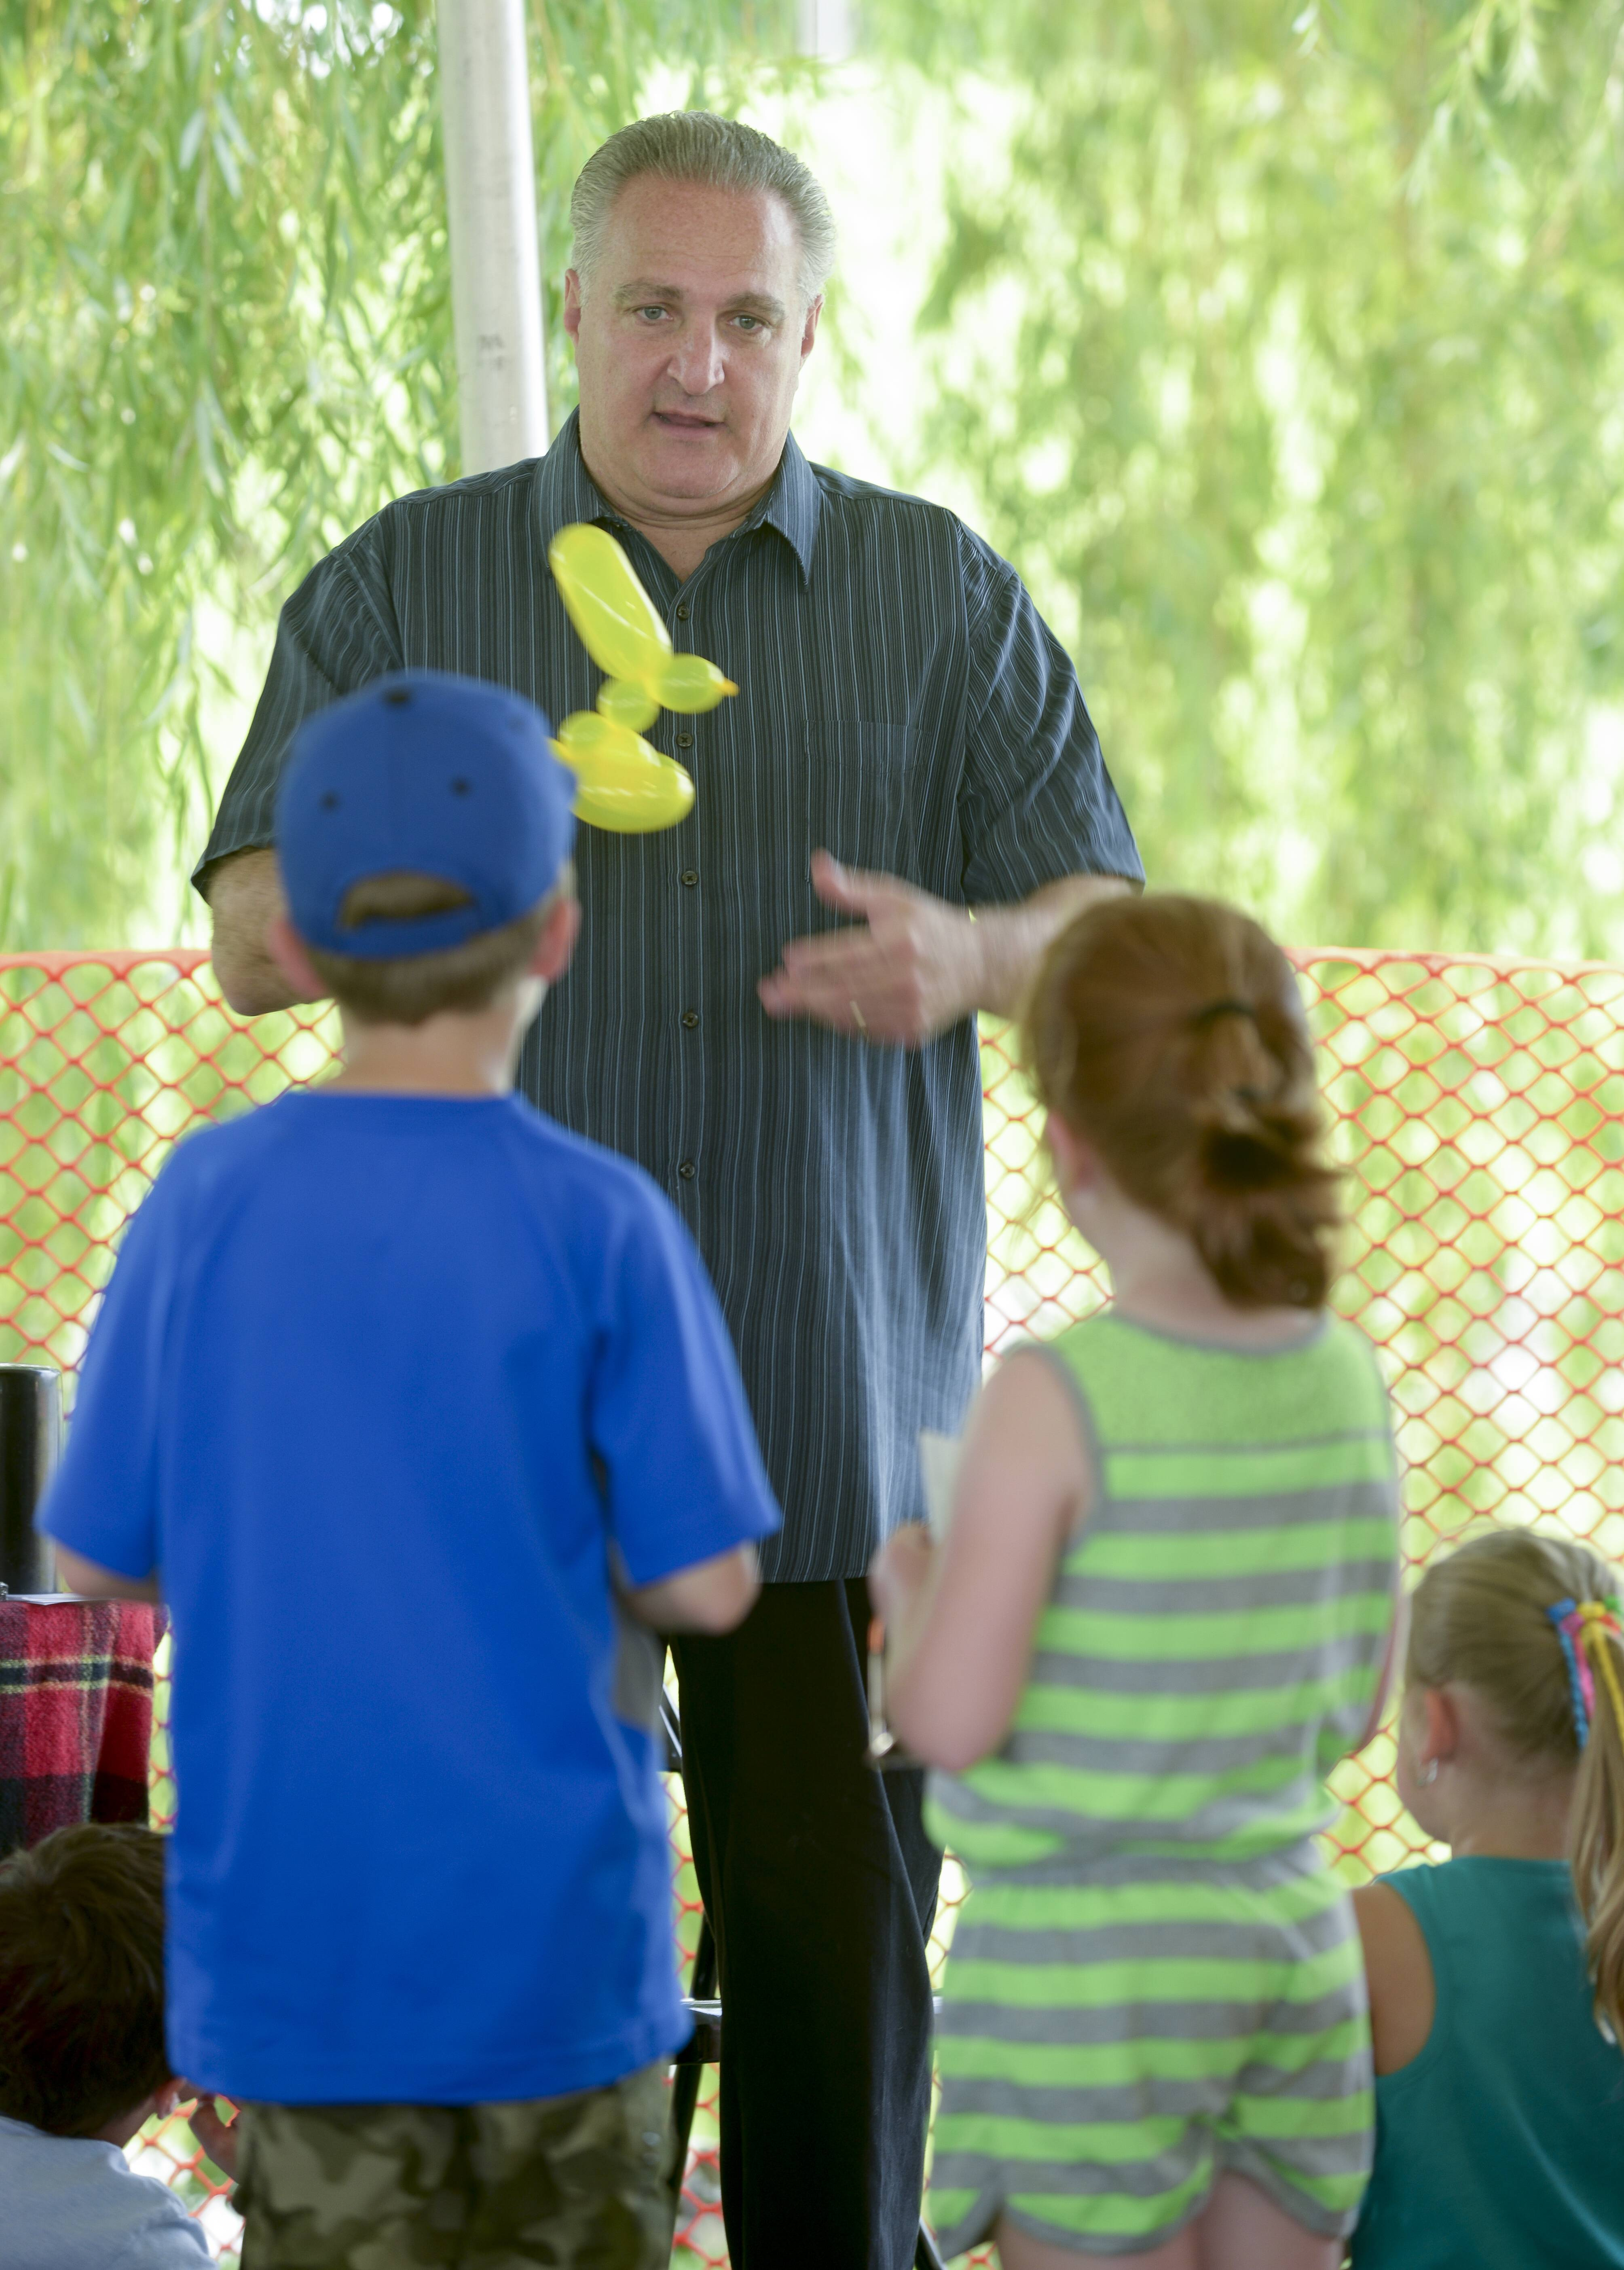 Al Brodosky makes some ballon animals during his free magic show for children Saturday at the Vernon Hills Summer Celebration. Brodsky is a longtime Vernon Hills resident and professional magician and children's entertainer.